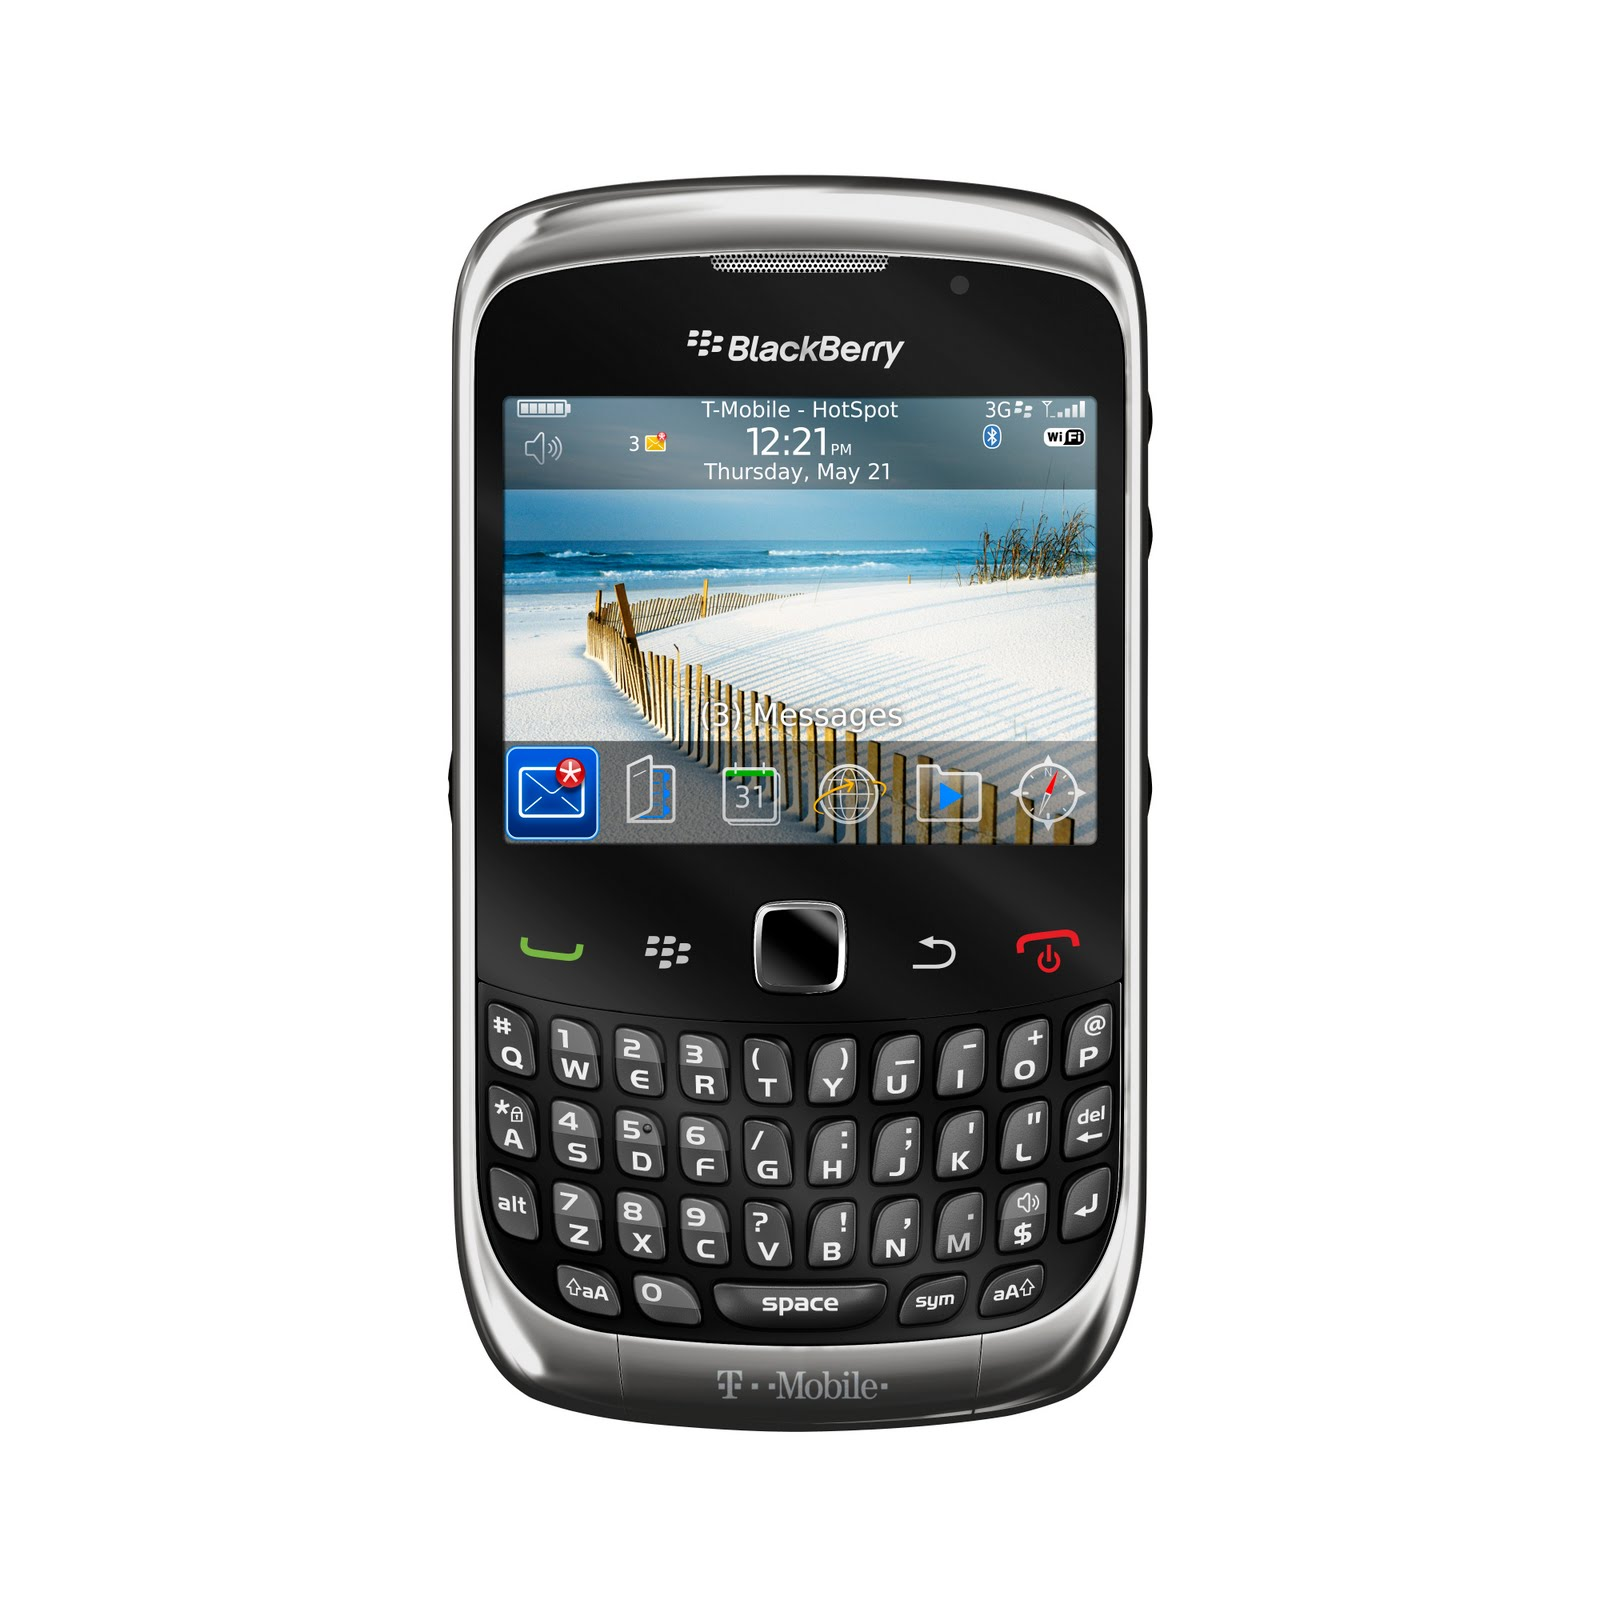 BlackBerry Curve 3G 9300 Specs, Review, Release Date